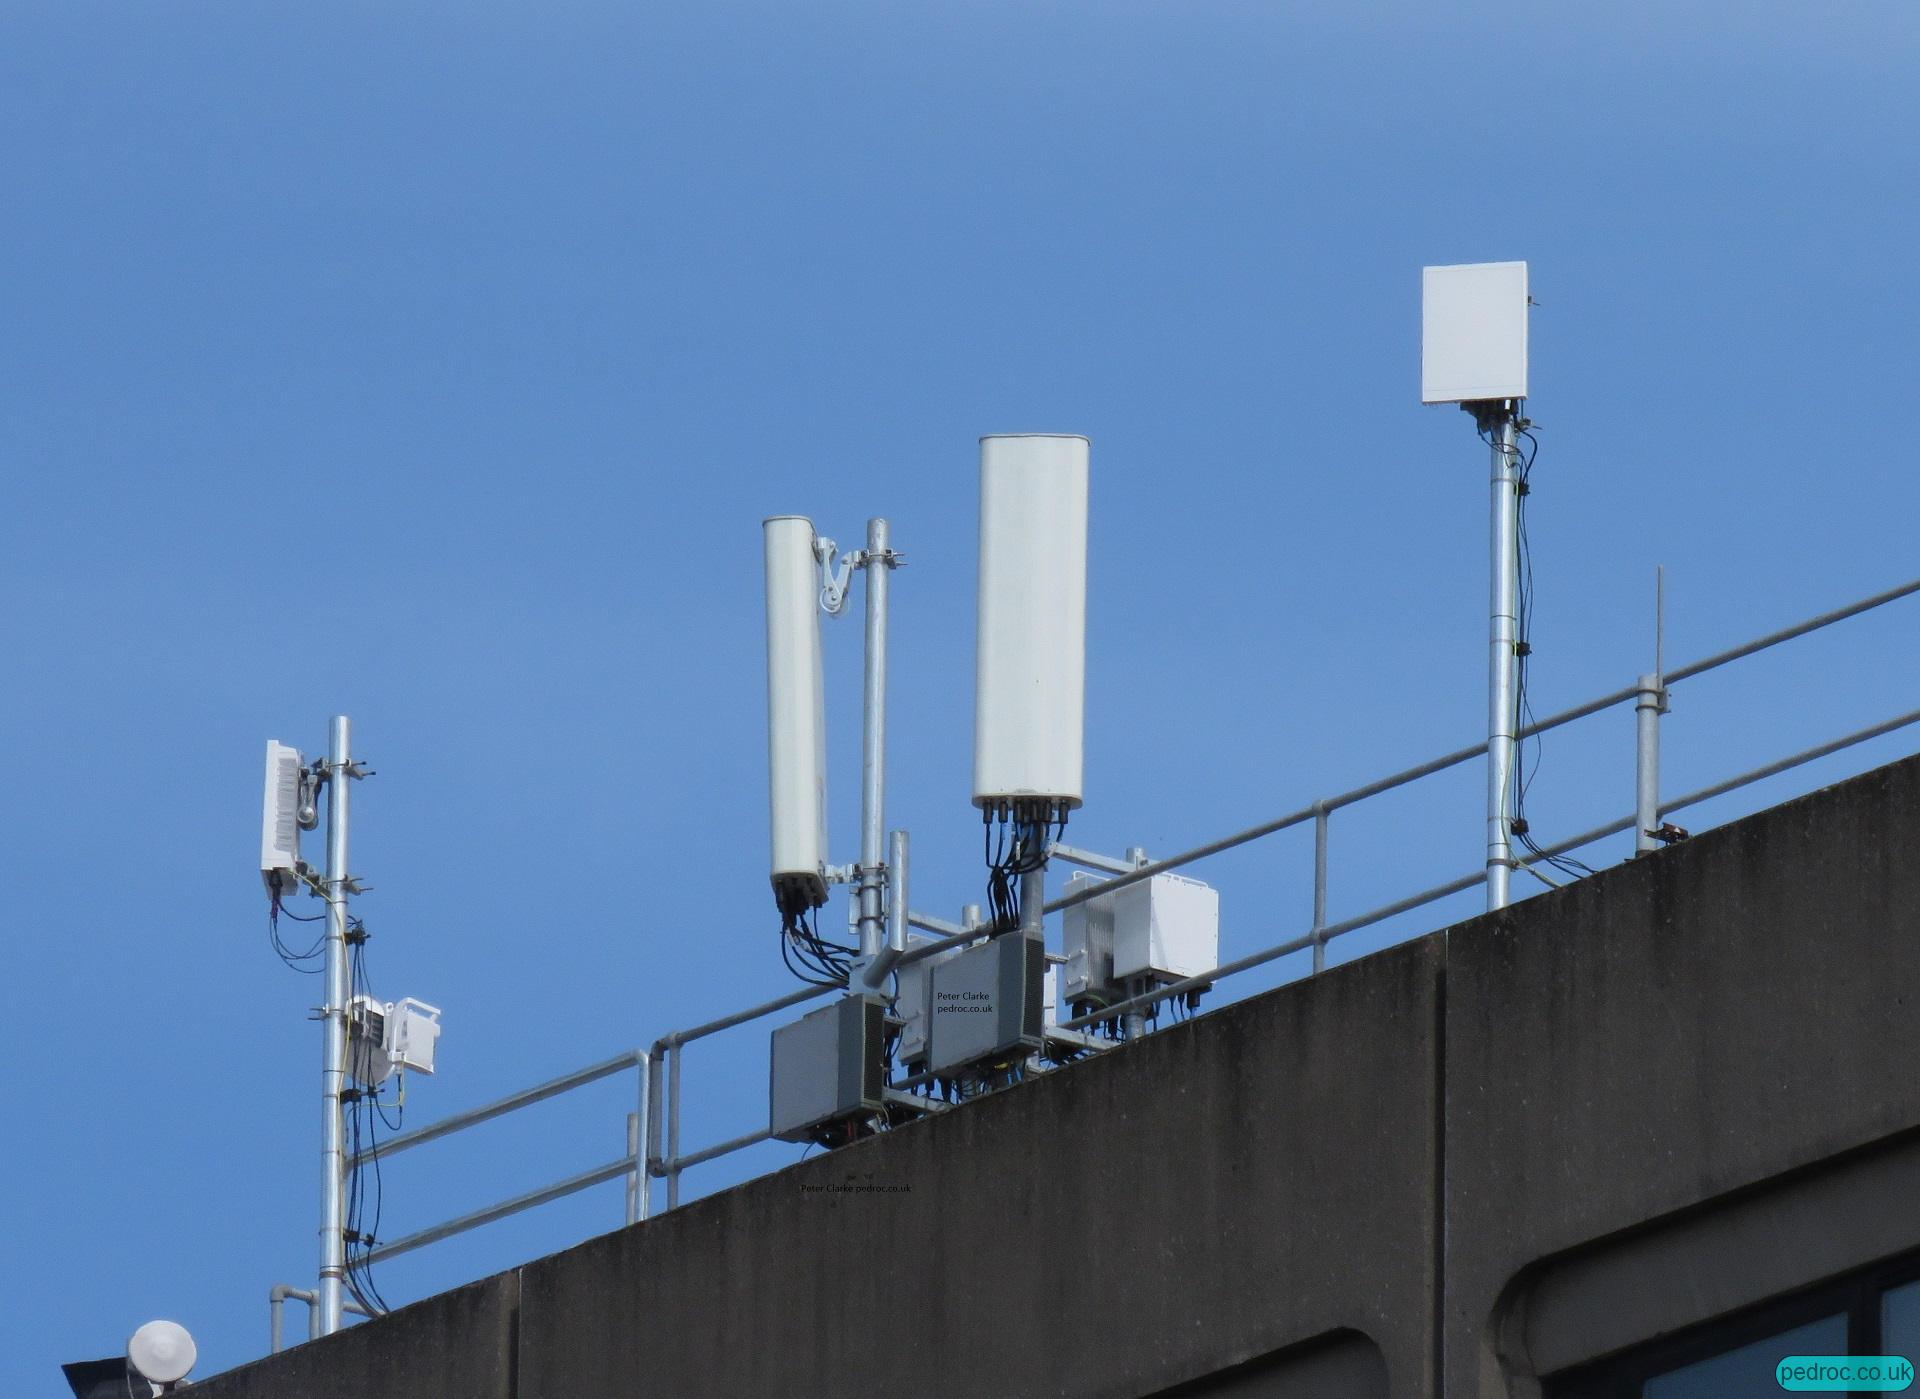 Three Ireland 5G site using Massive MIMO and 4G equipment (including B28) from Ericsson. Nokia U09 radios.